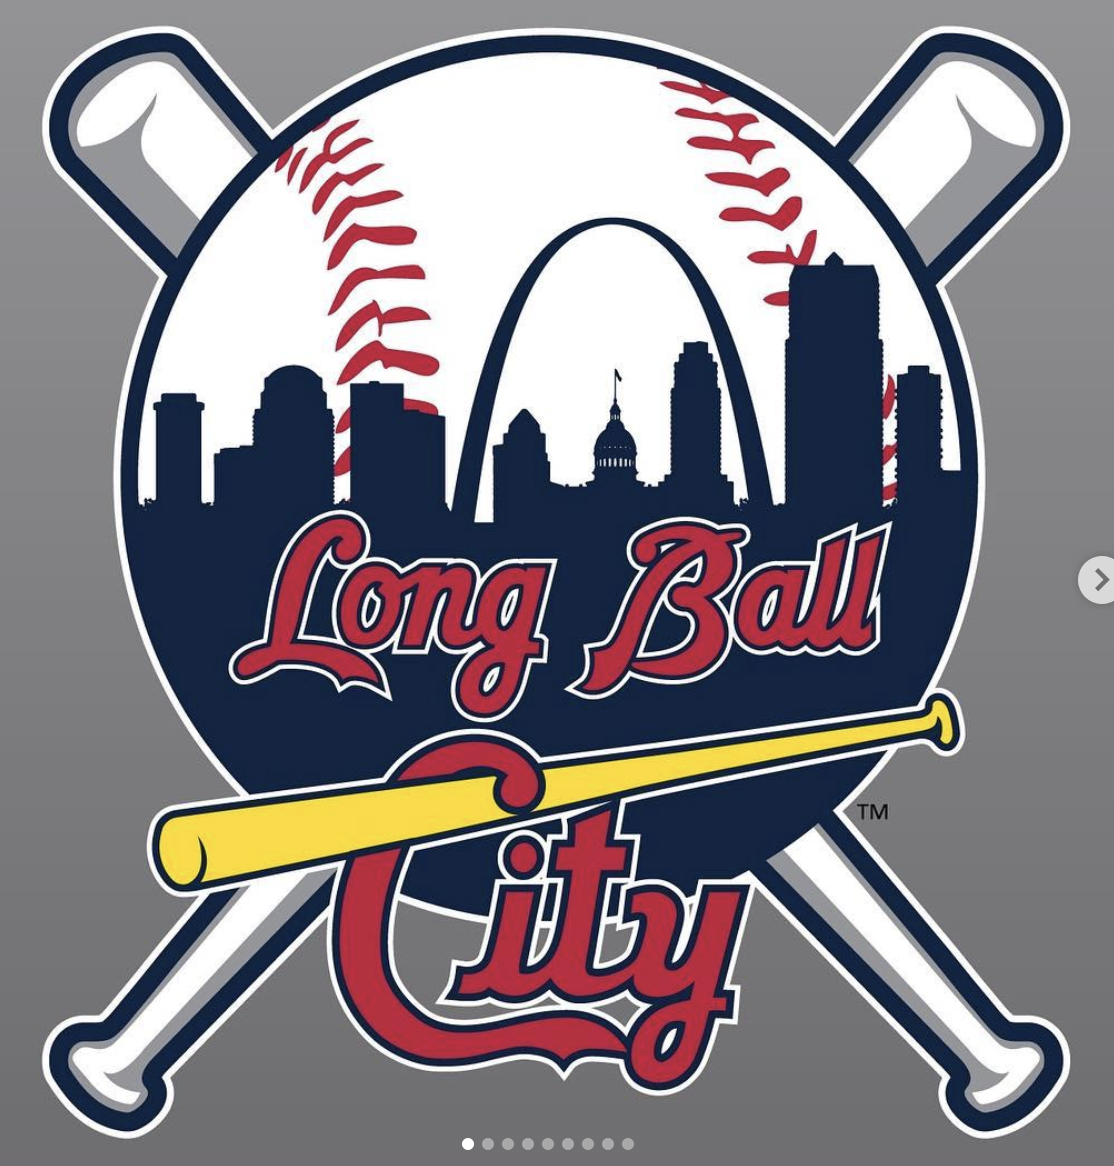 Longballcity Cardinals Fans We Re Taking Christmas Into Extra Innings Shop Our Store To Snag One Of These For Yourself Or Y Homerun Stl Cardinals Fun Sports